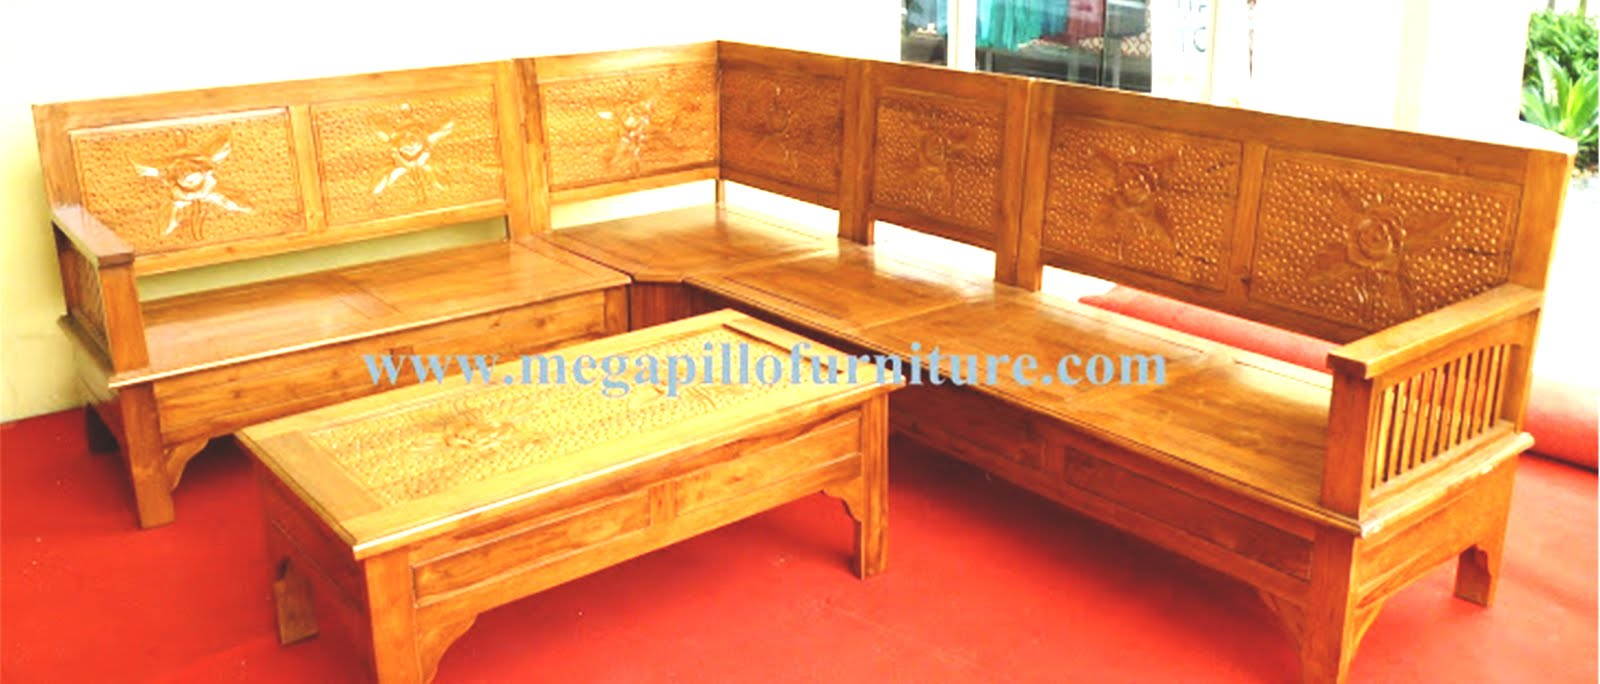 Finest Quality Furnitures